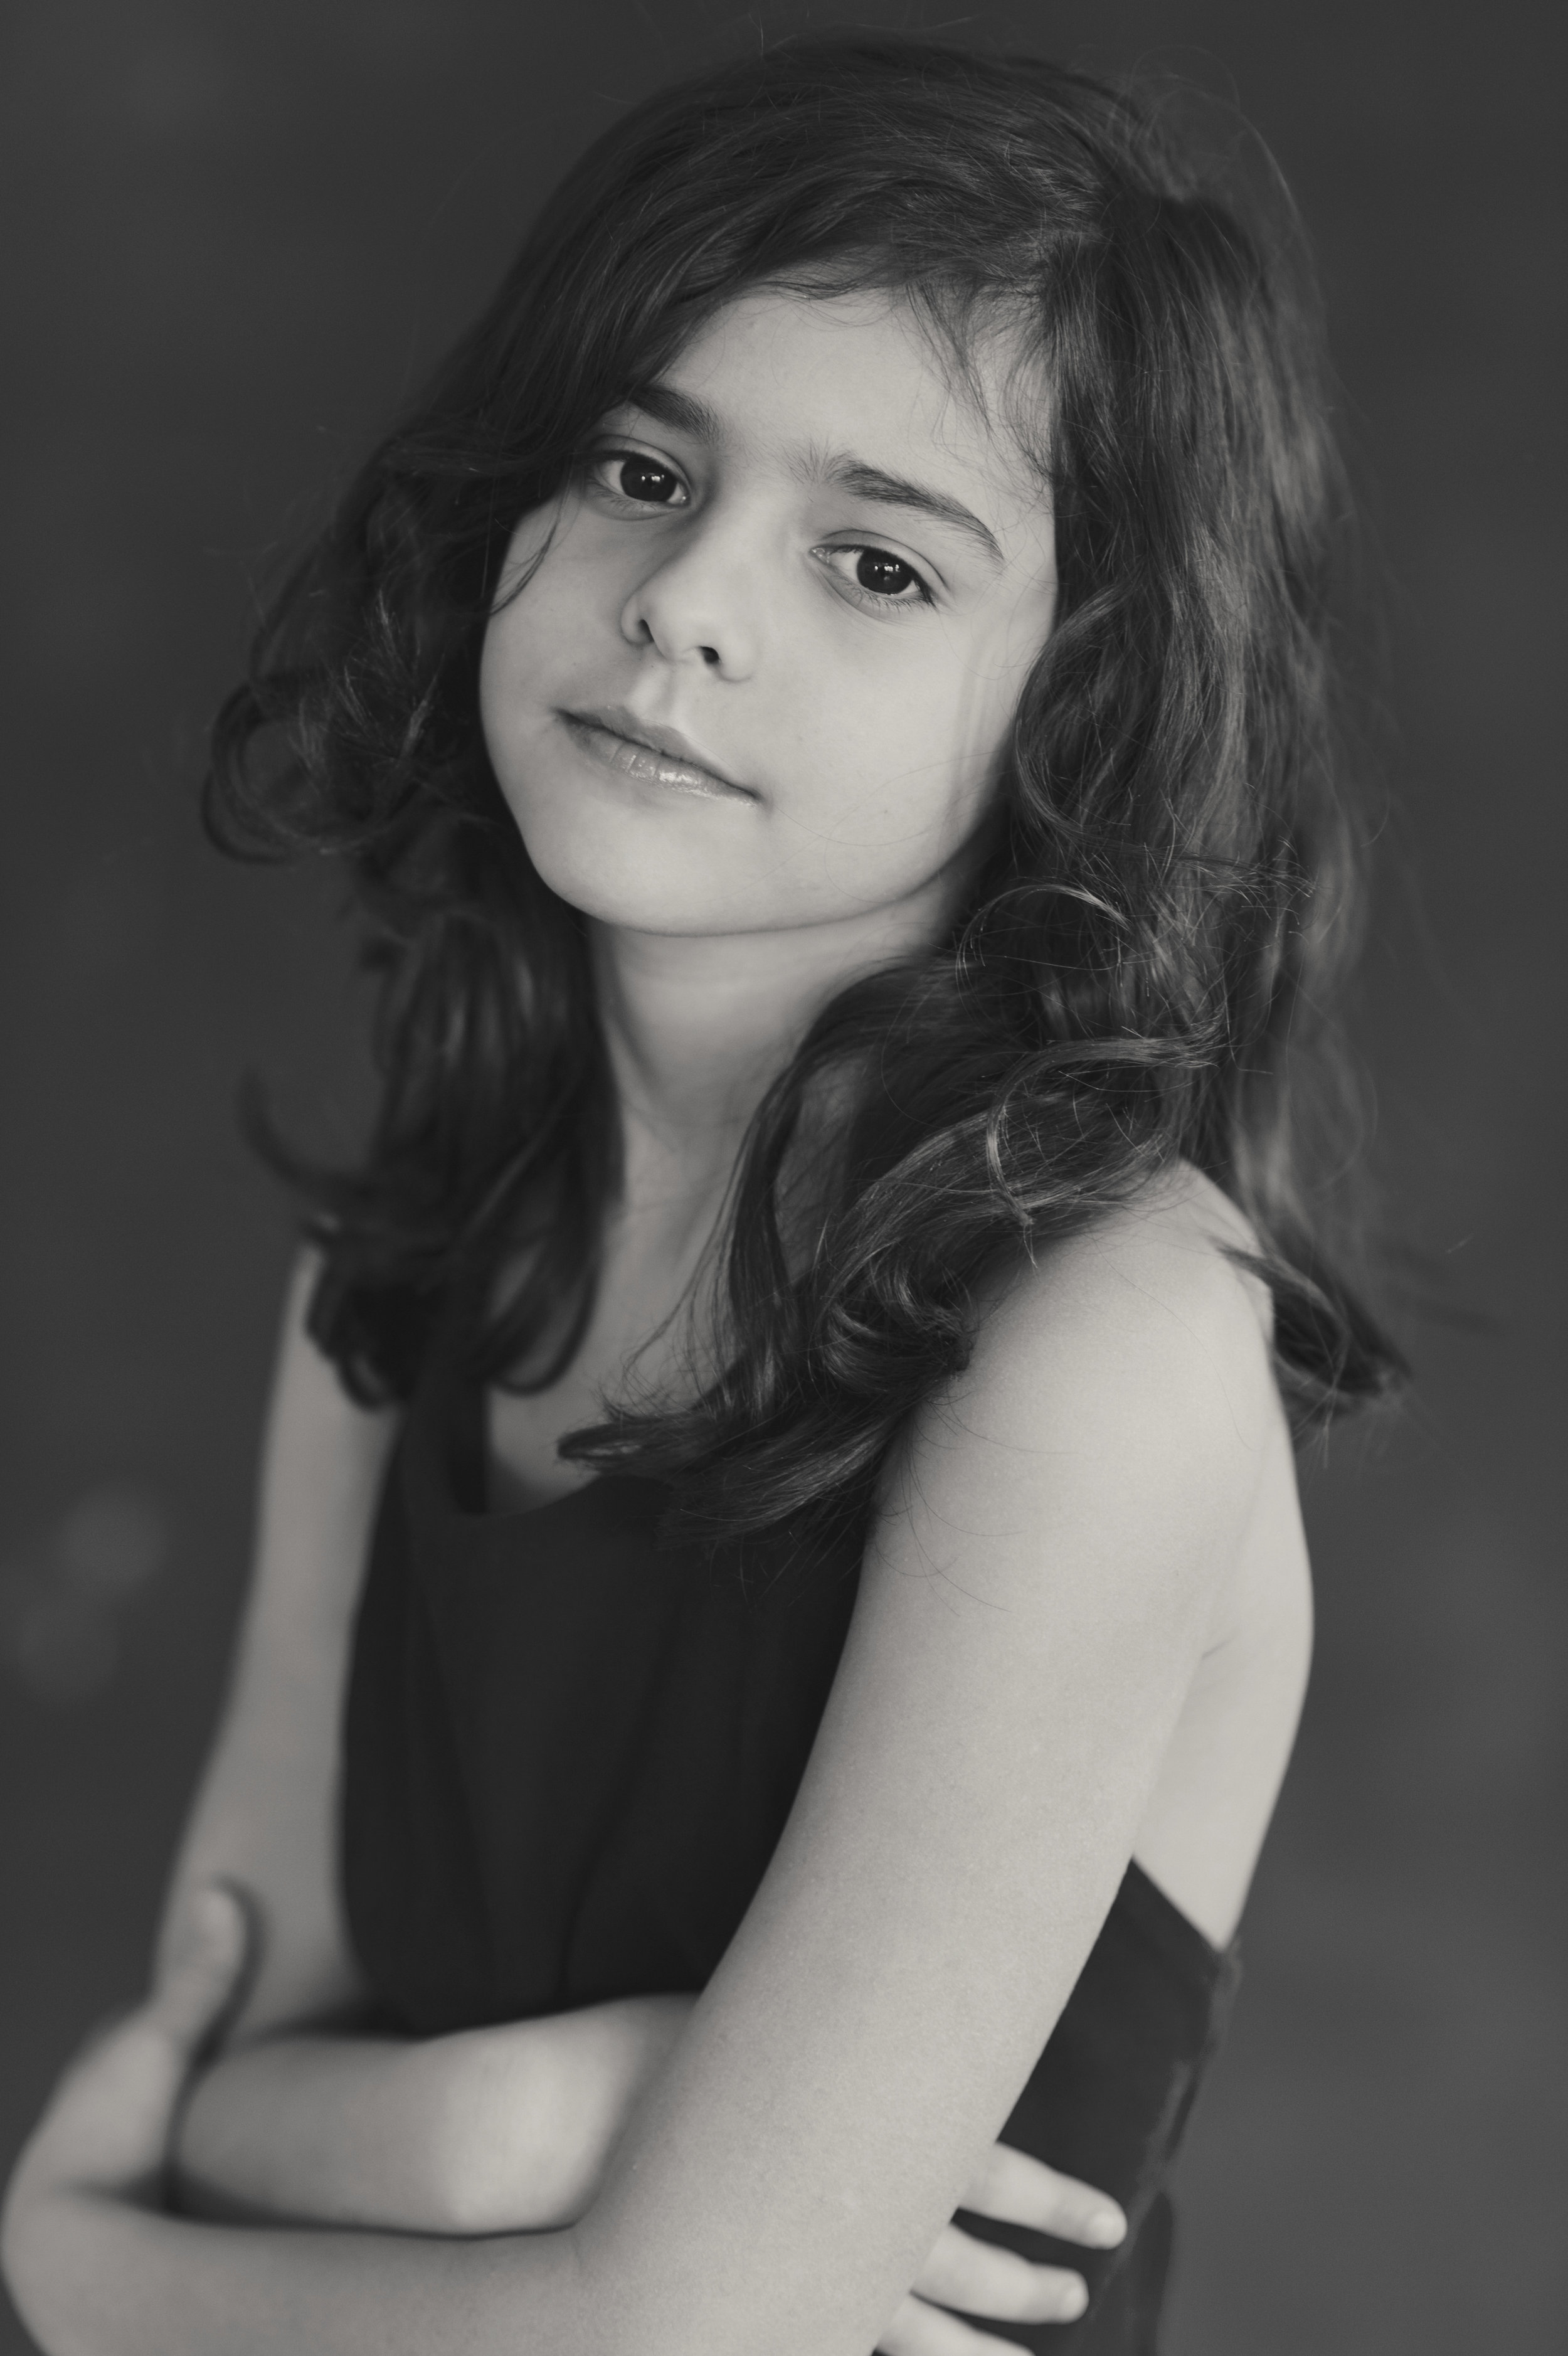 marta-hewson-young-girl-smiling-black-and-white.jpg